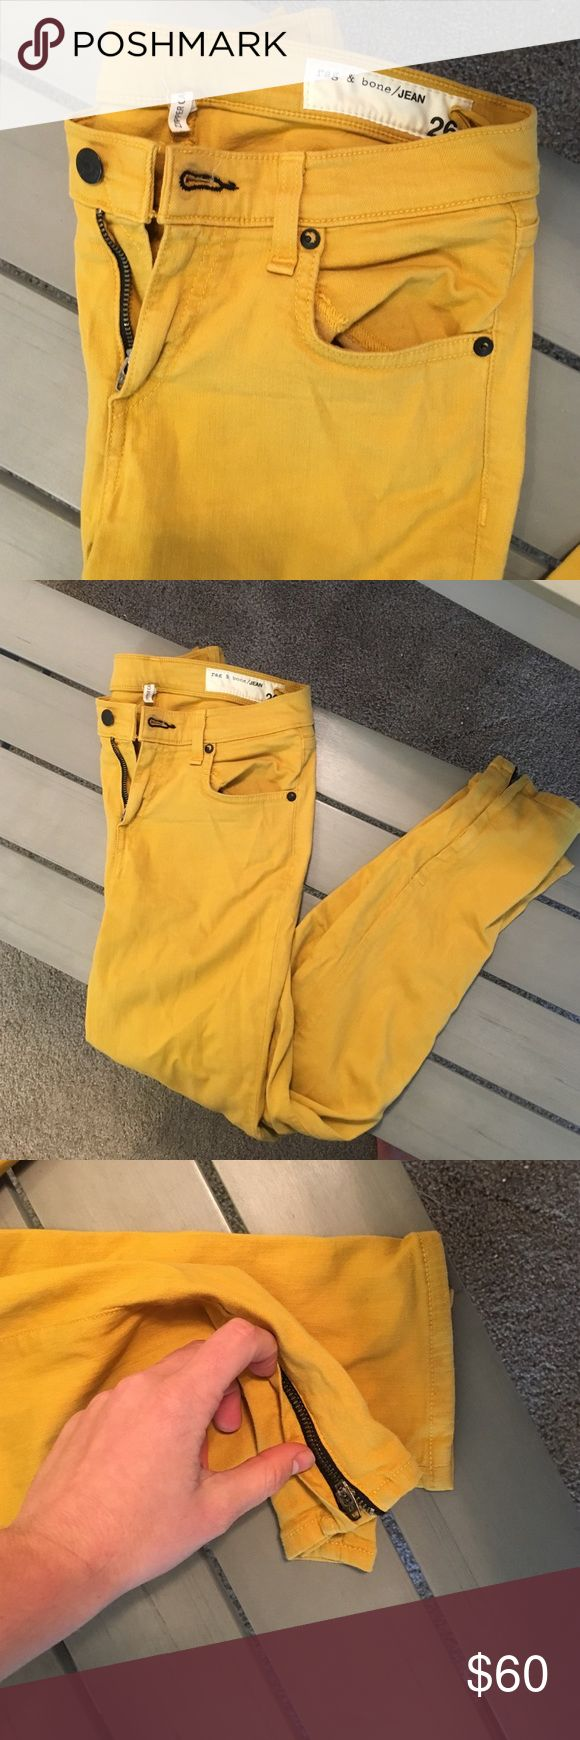 Rag & bone mustard yellow skinny jeans Mustard yellow skinny jeans. Zipper at ankle. Very good condition rag & bone Pants Skinny